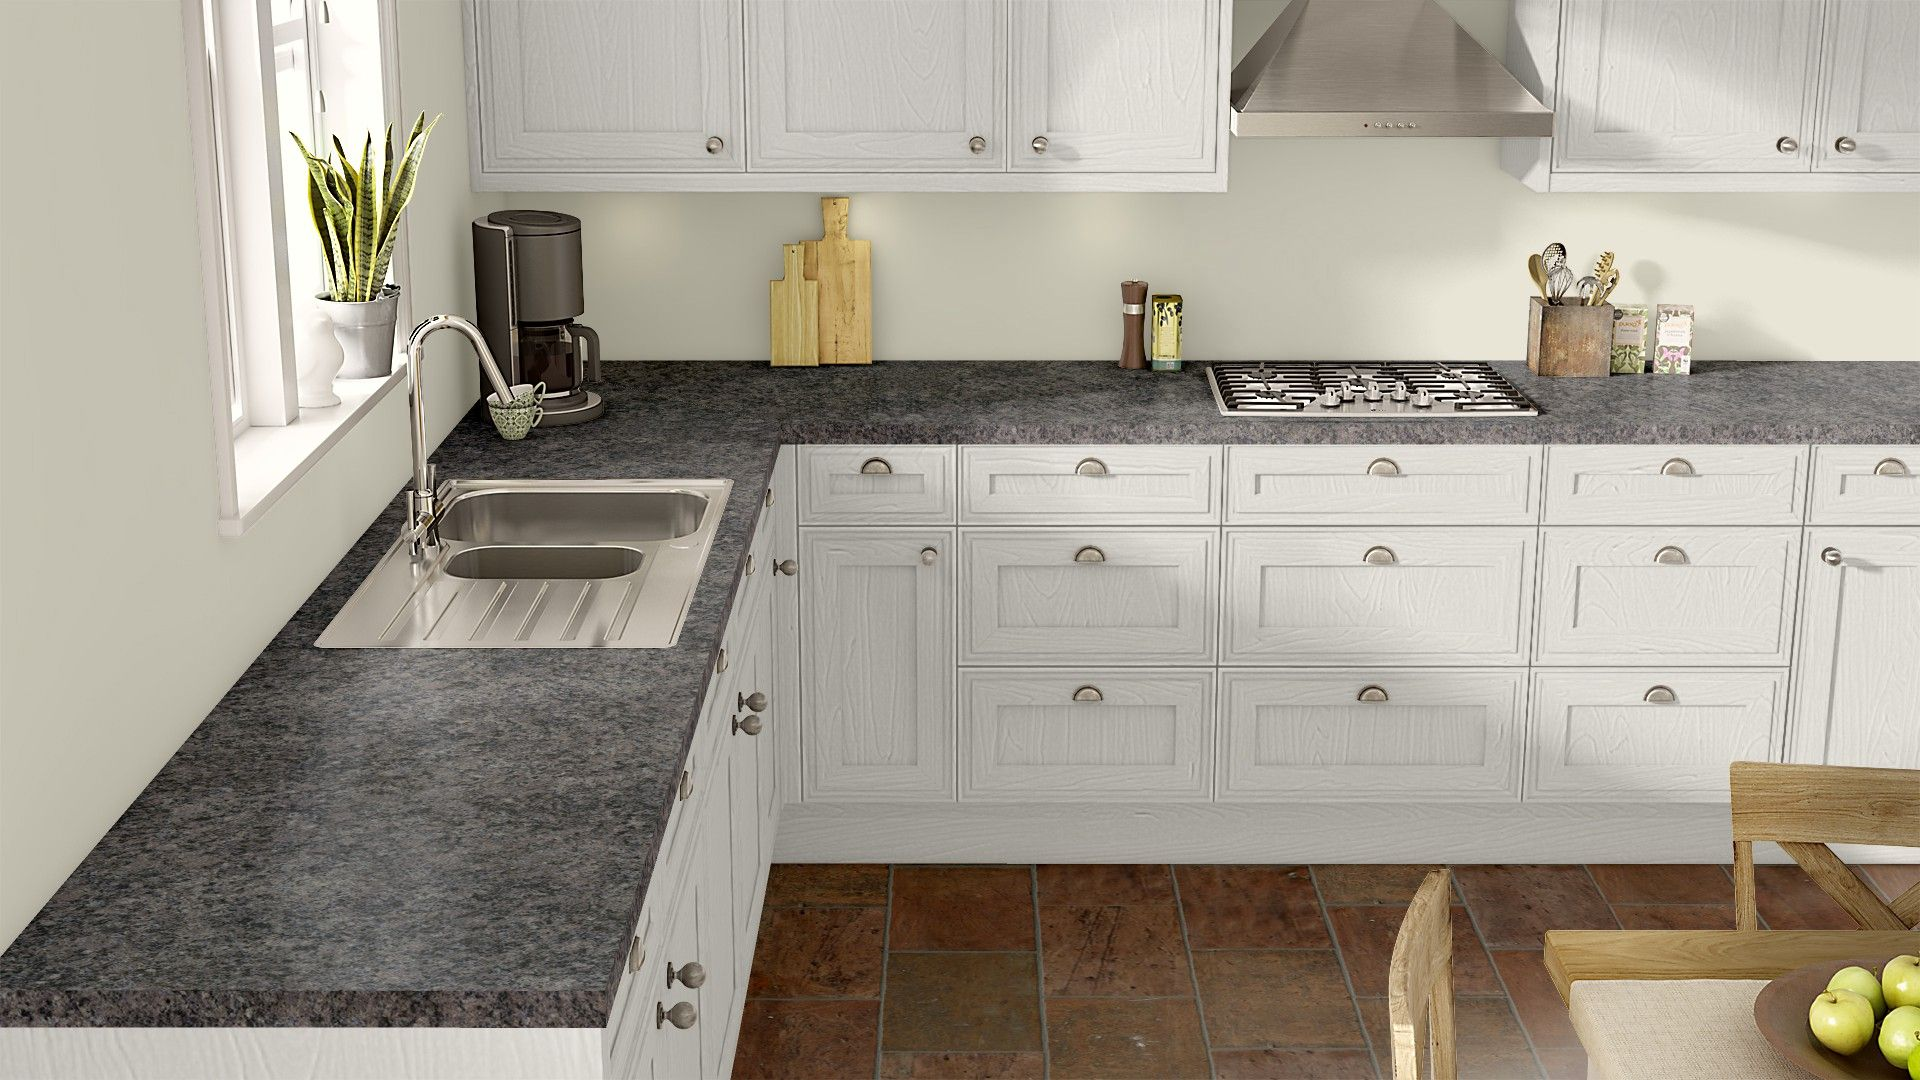 Kitchen Design Visualizer get inspired for your kitchen renovation with wilsonart's free